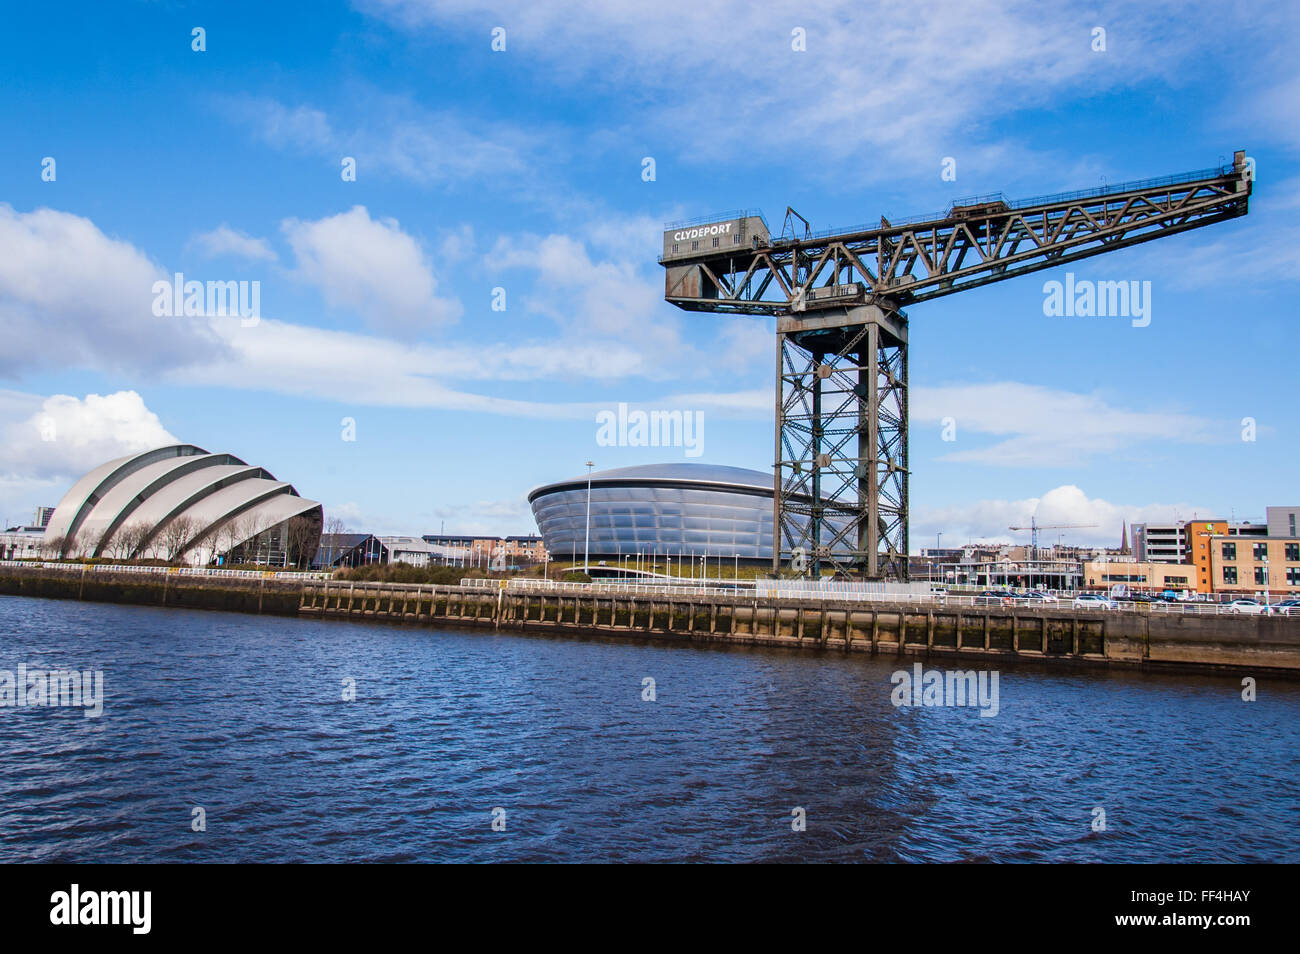 View of the Hydro concert arena and SECC exhibition center with Finnieston crane on the side. Glasgow, Scotland, - Stock Image